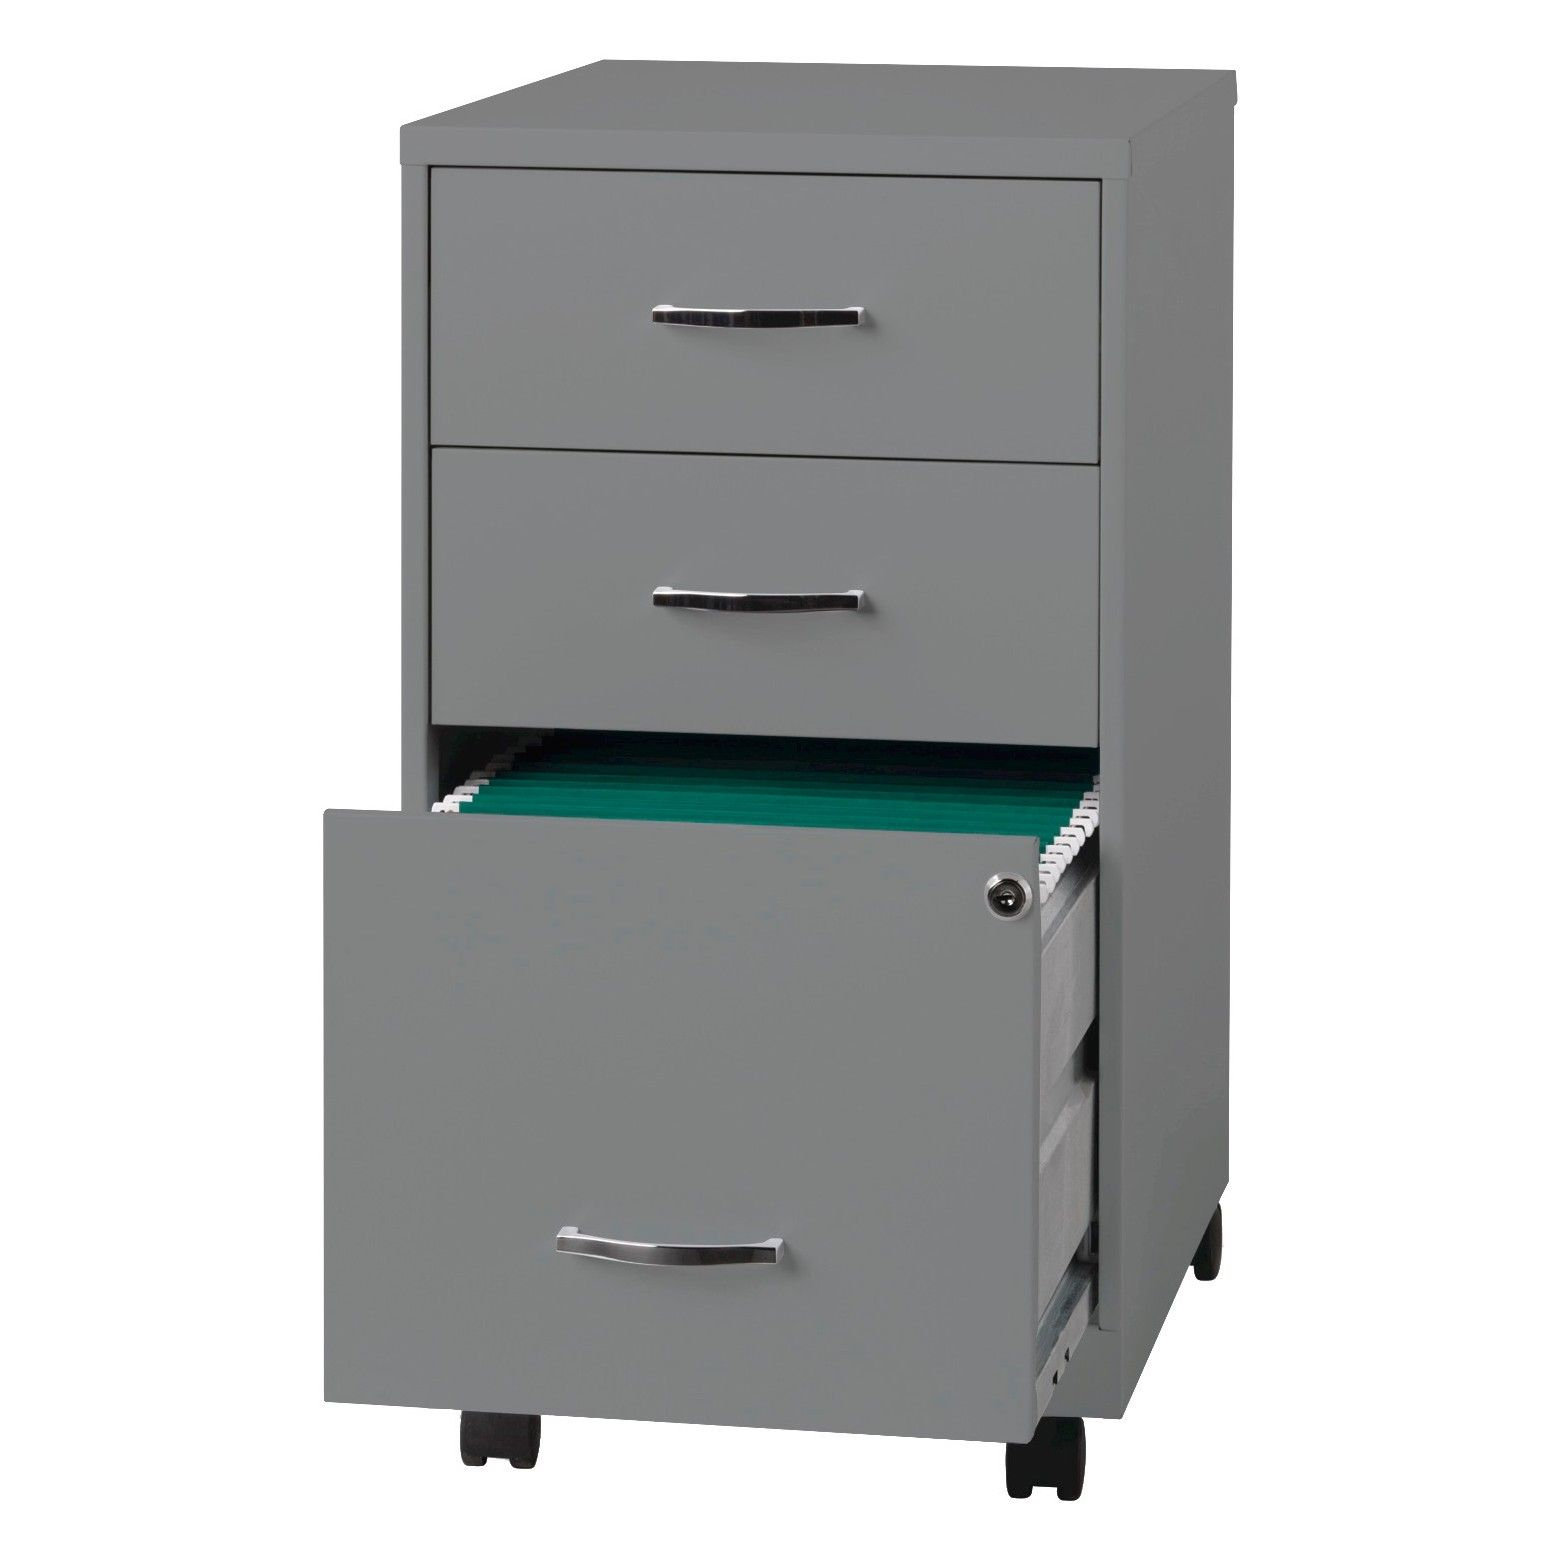 Organized Storage Is What The Hirsh Vertical 3 Drawer File Cabinet